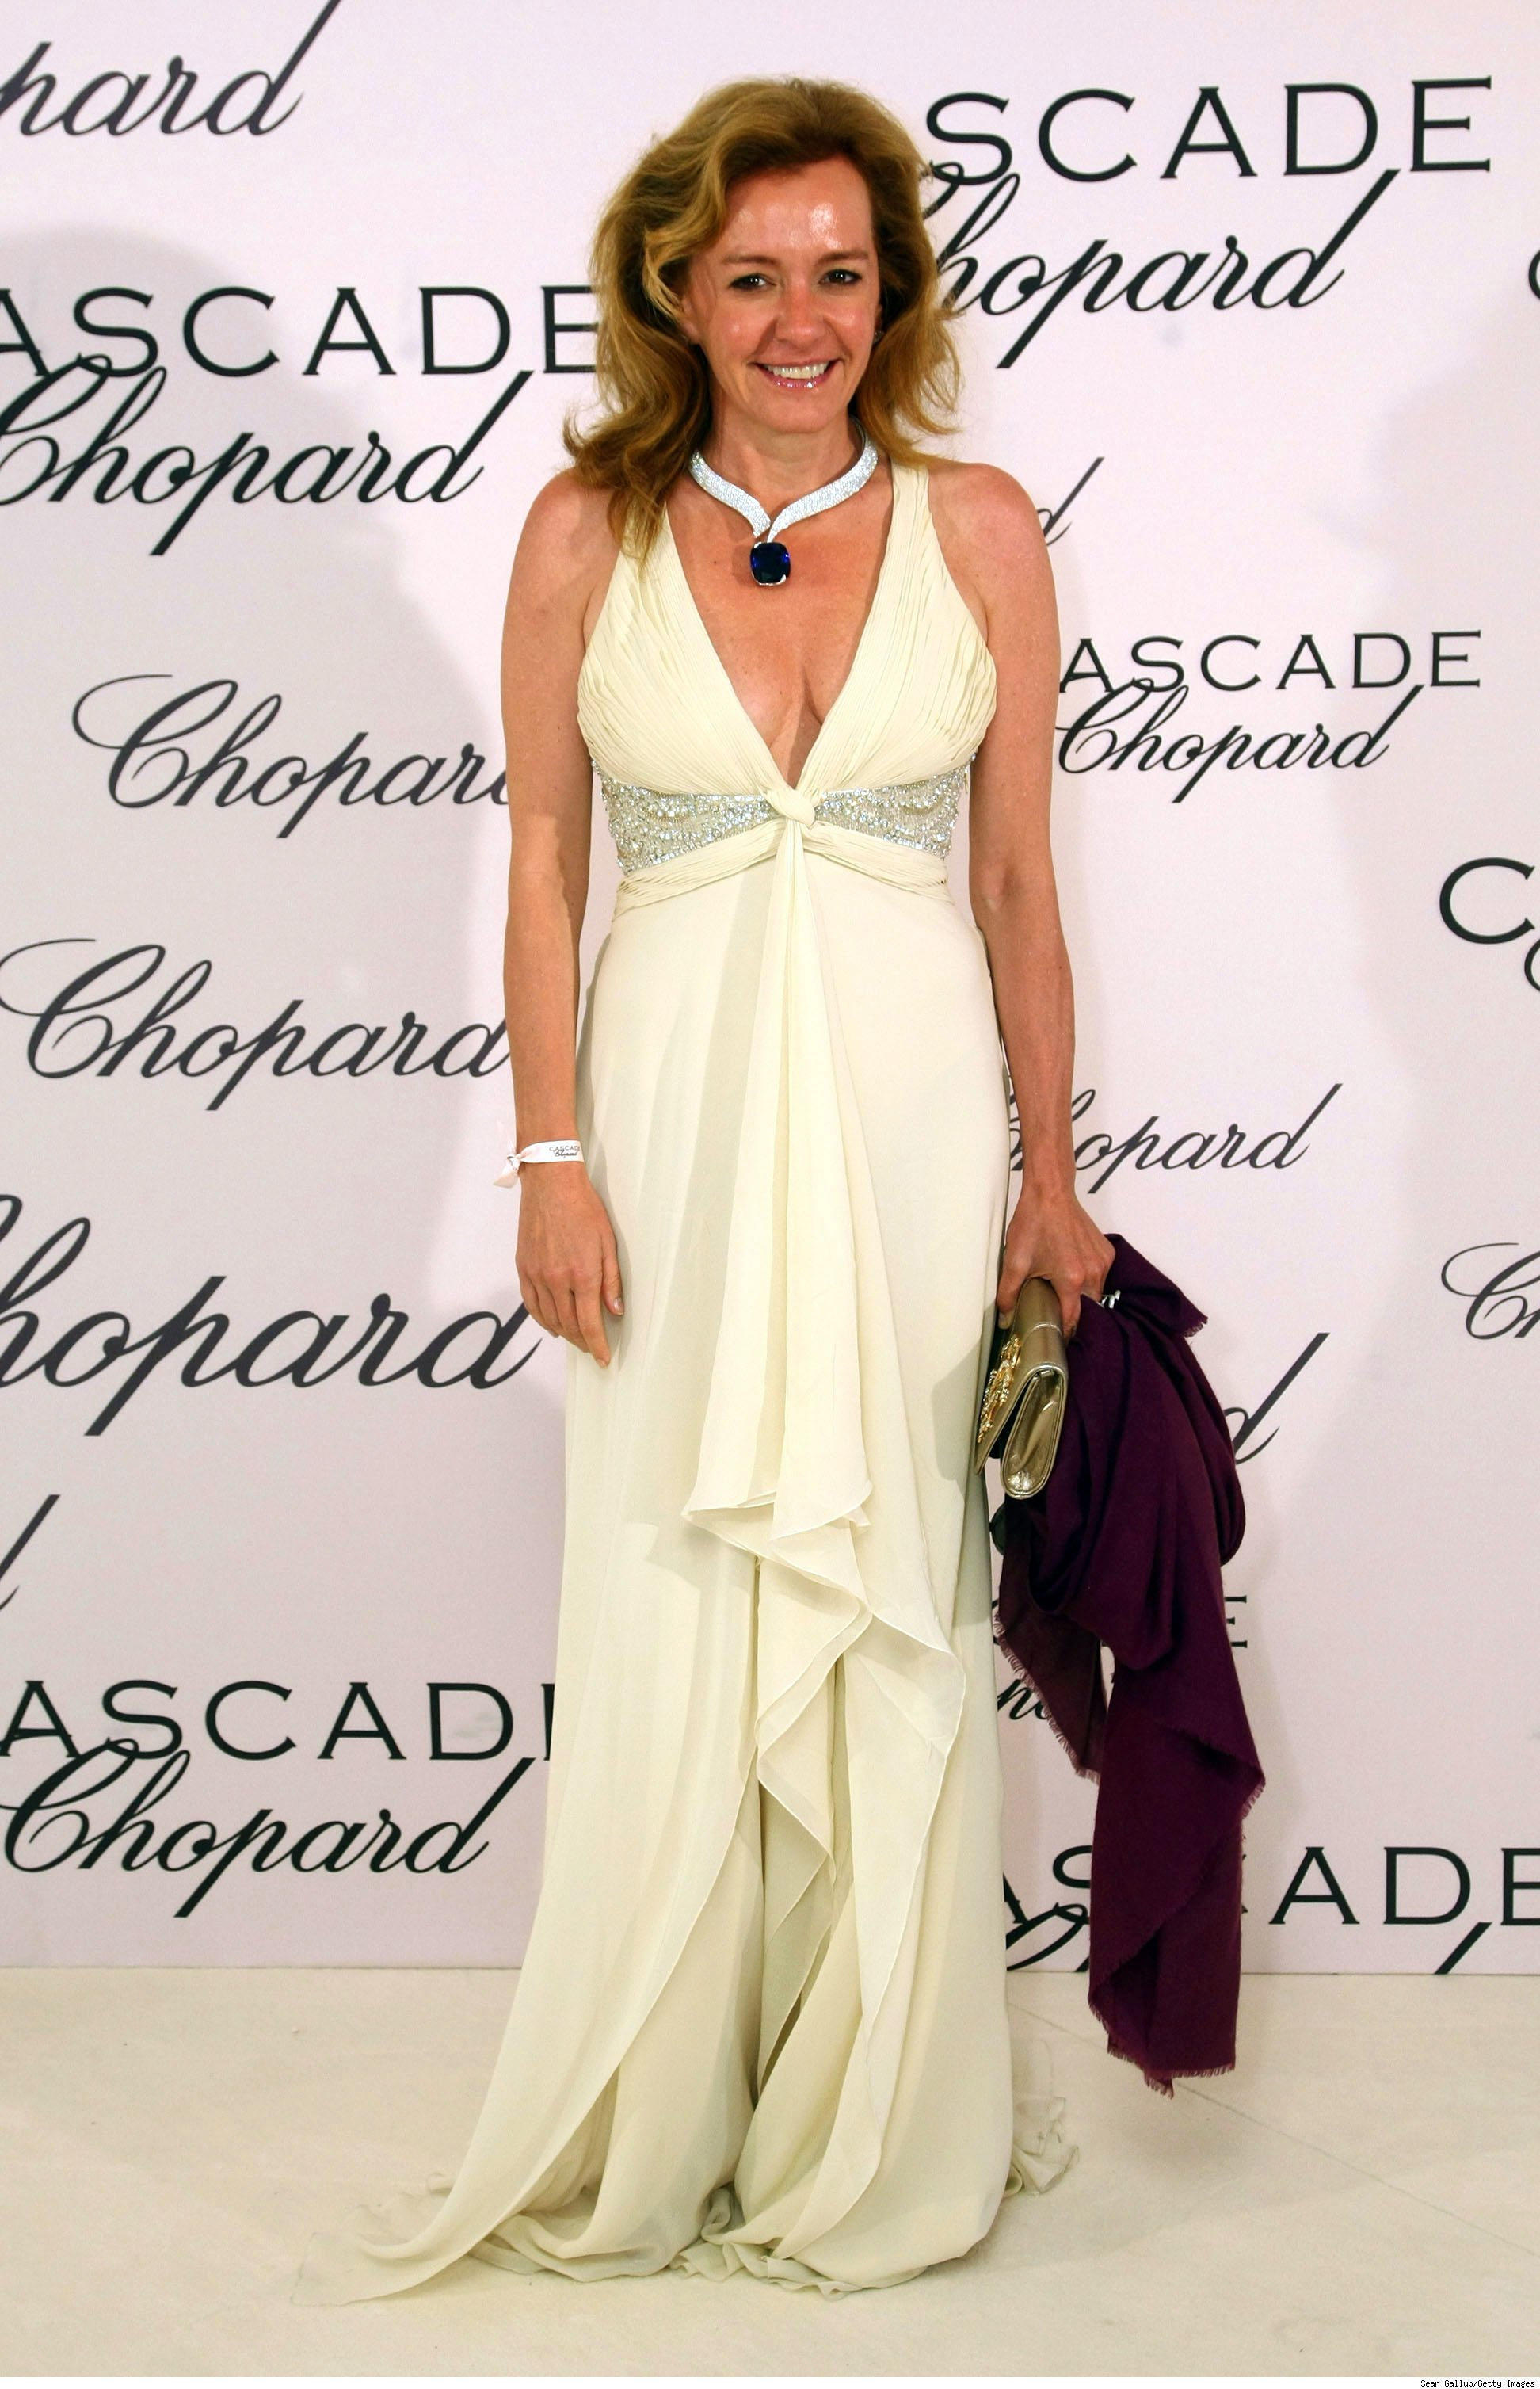 Chopard designer Caroline Gruosi-Scheufele